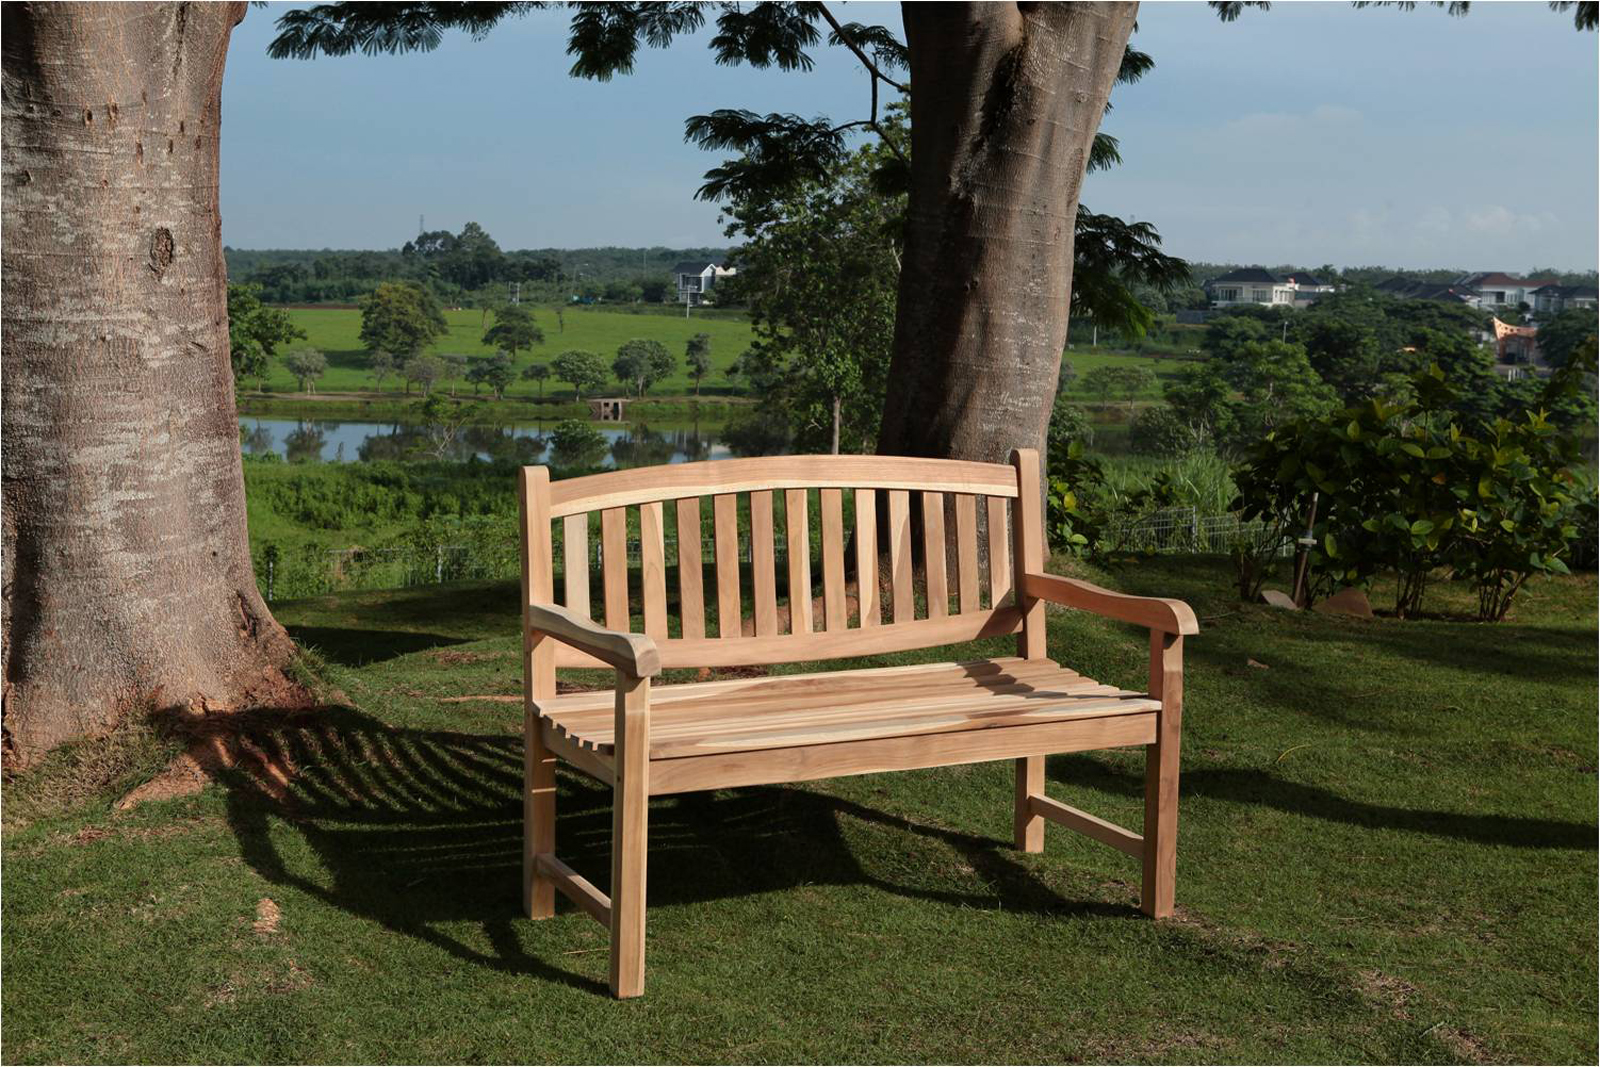 sam teak 2 sitzer gartenbank 120 cm olivera auf lager. Black Bedroom Furniture Sets. Home Design Ideas